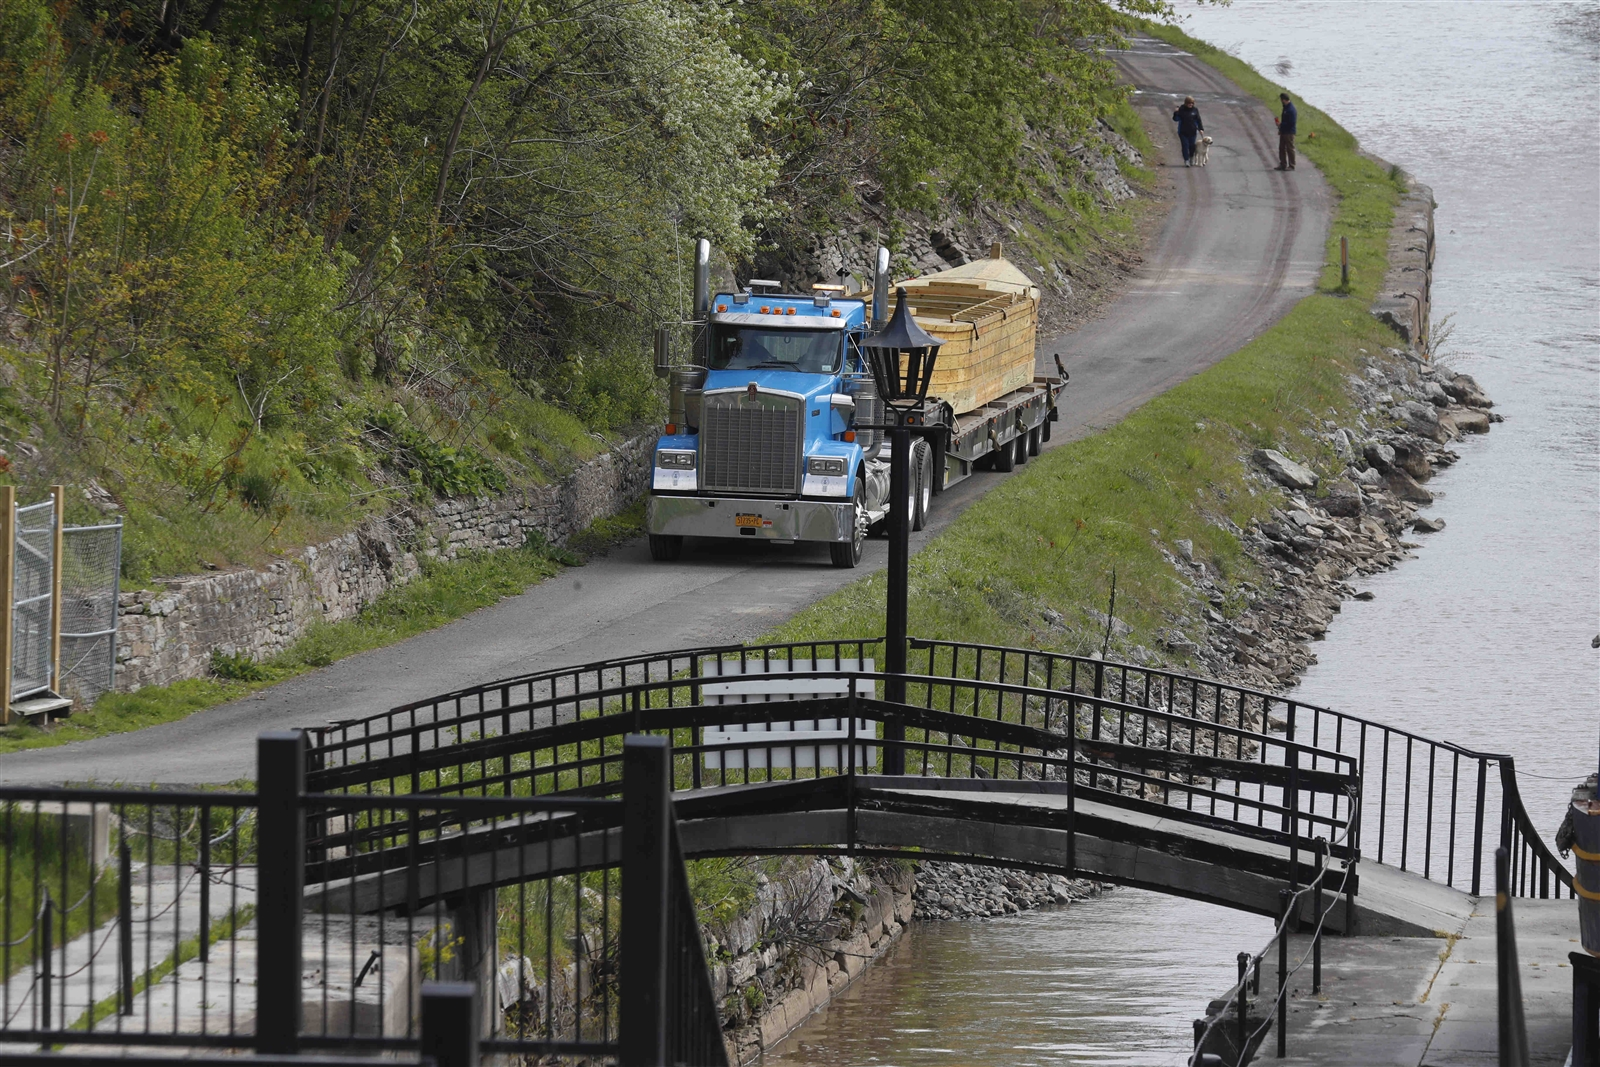 The Erie Traveler, a replica of a 19th century Erie Canal cargo boat, known as a Durham Boat, weighs 8 tons and was carried by flatbed truck to the Flight of Five locks on the Erie Canal in Lockport Thursday May 11, 2017.